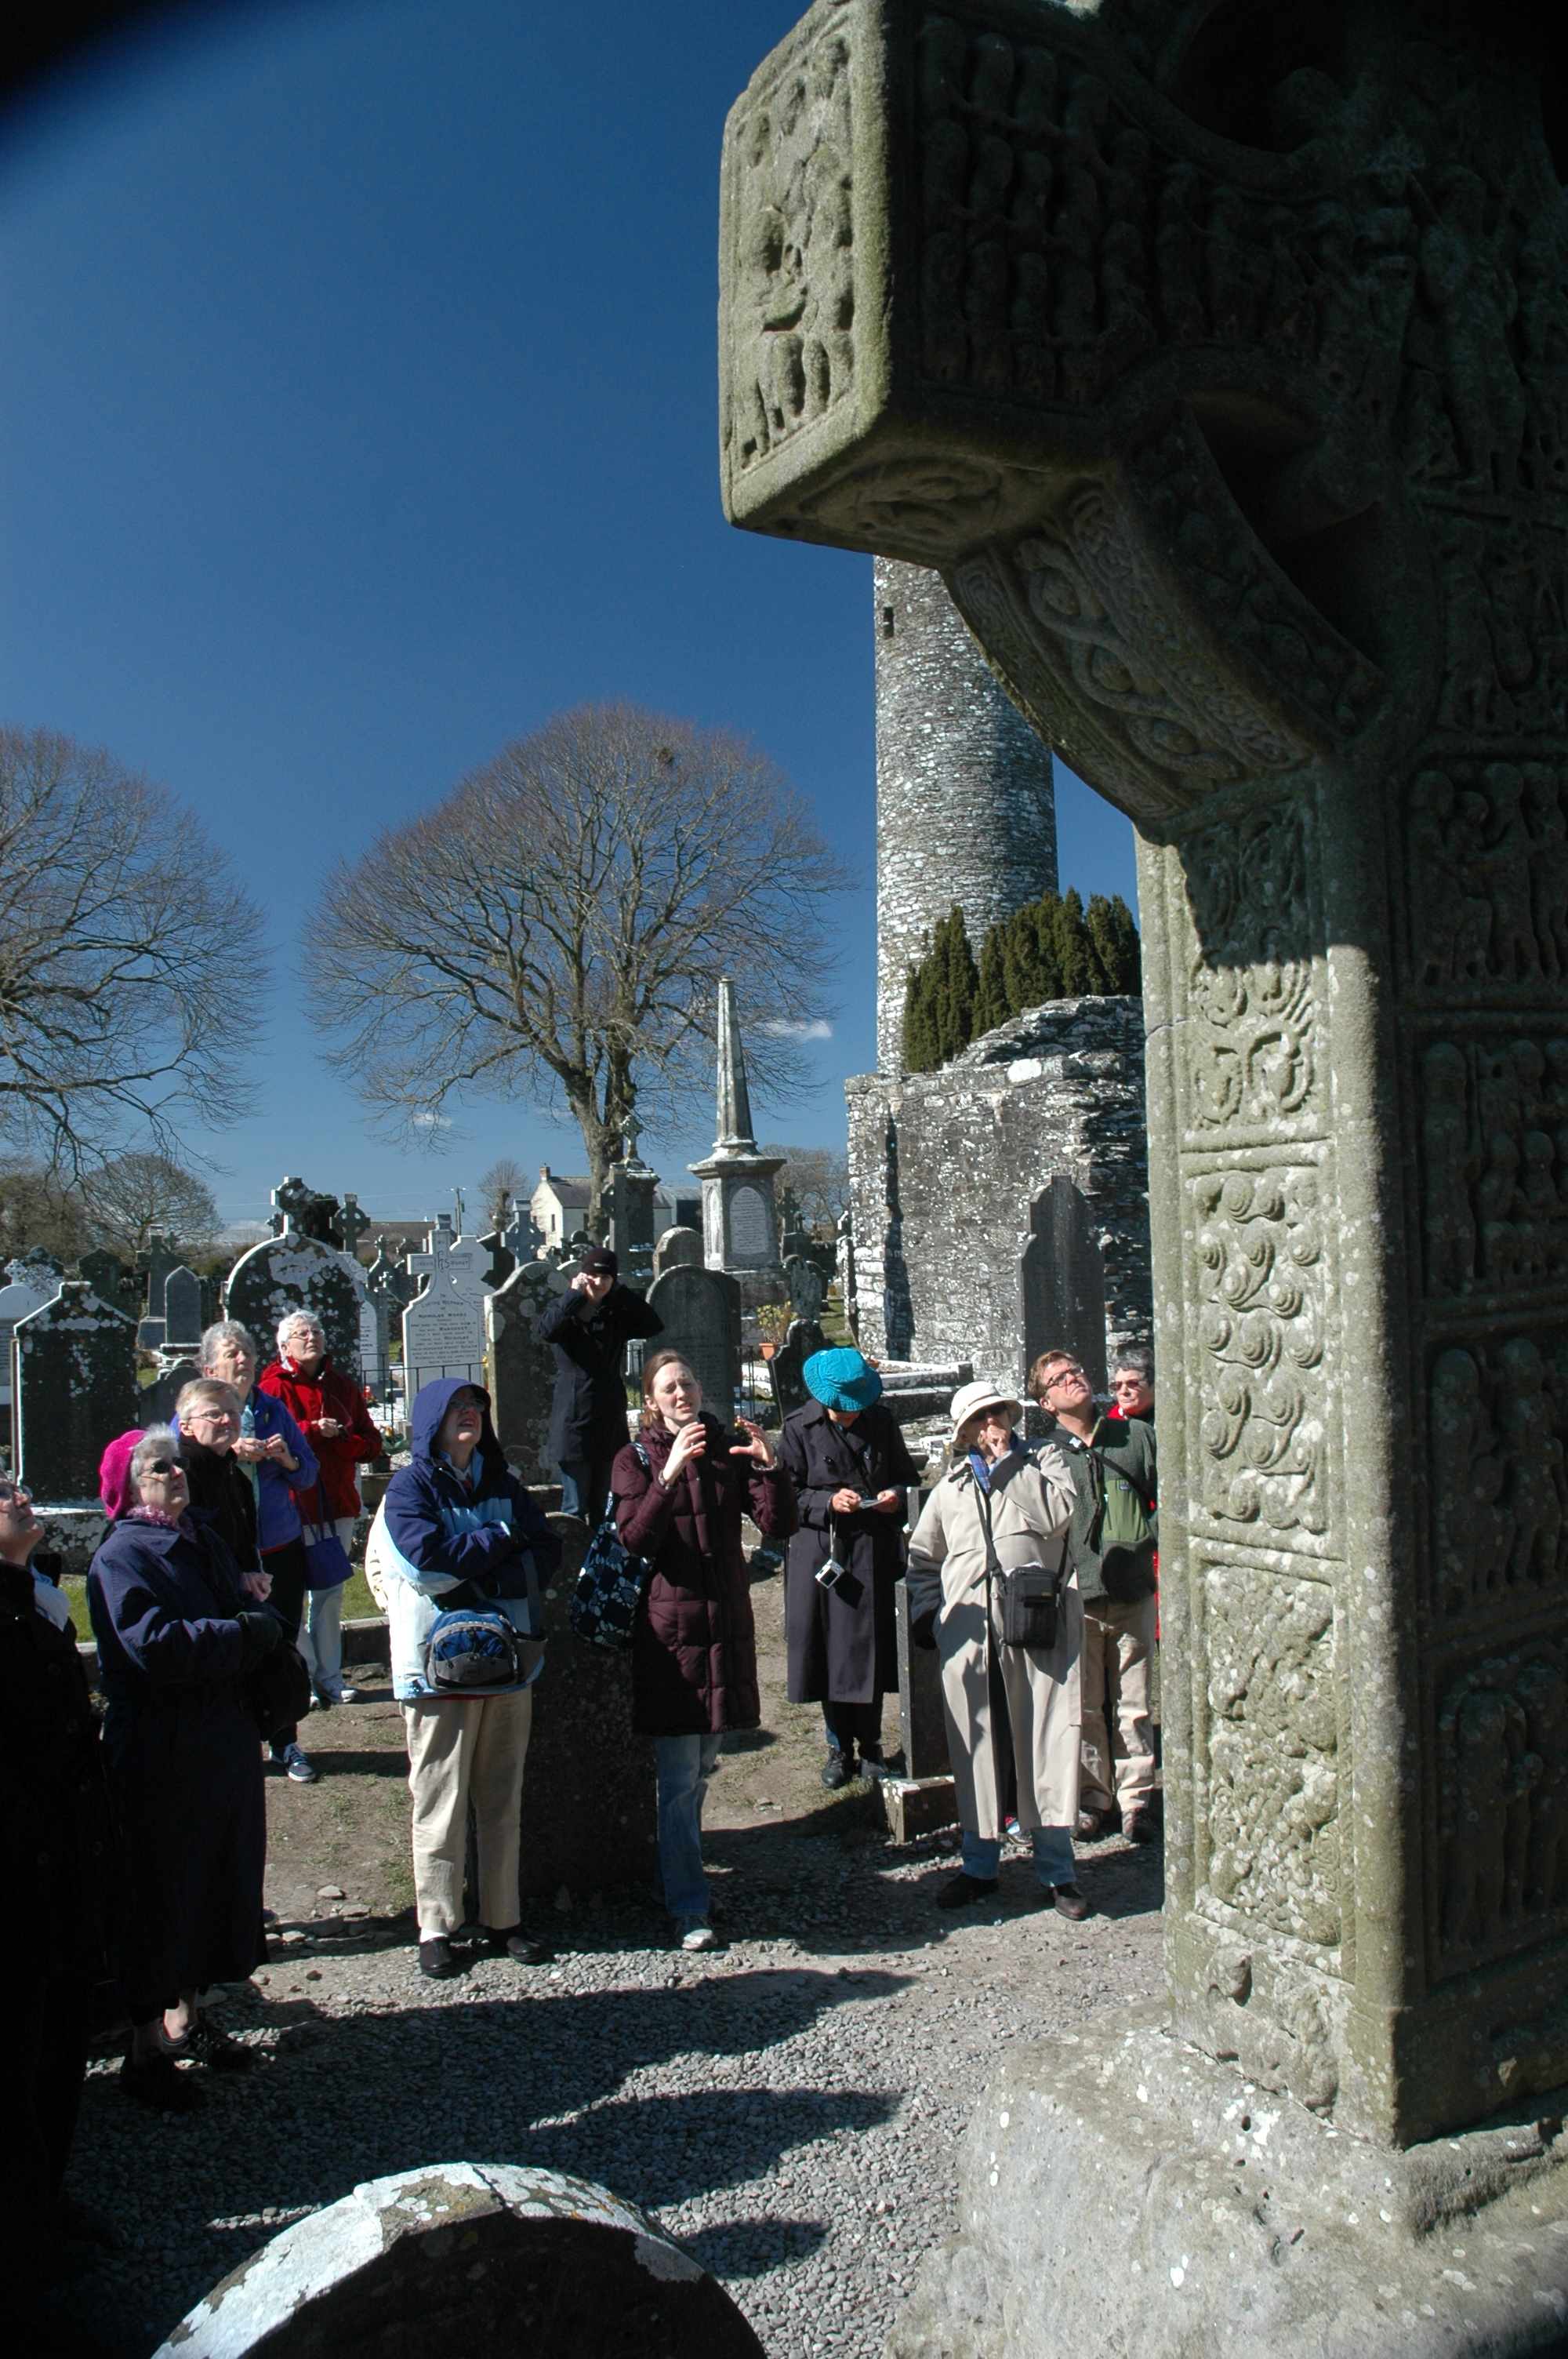 The group visits Monstarbuice, the site of an ancient Celtic community